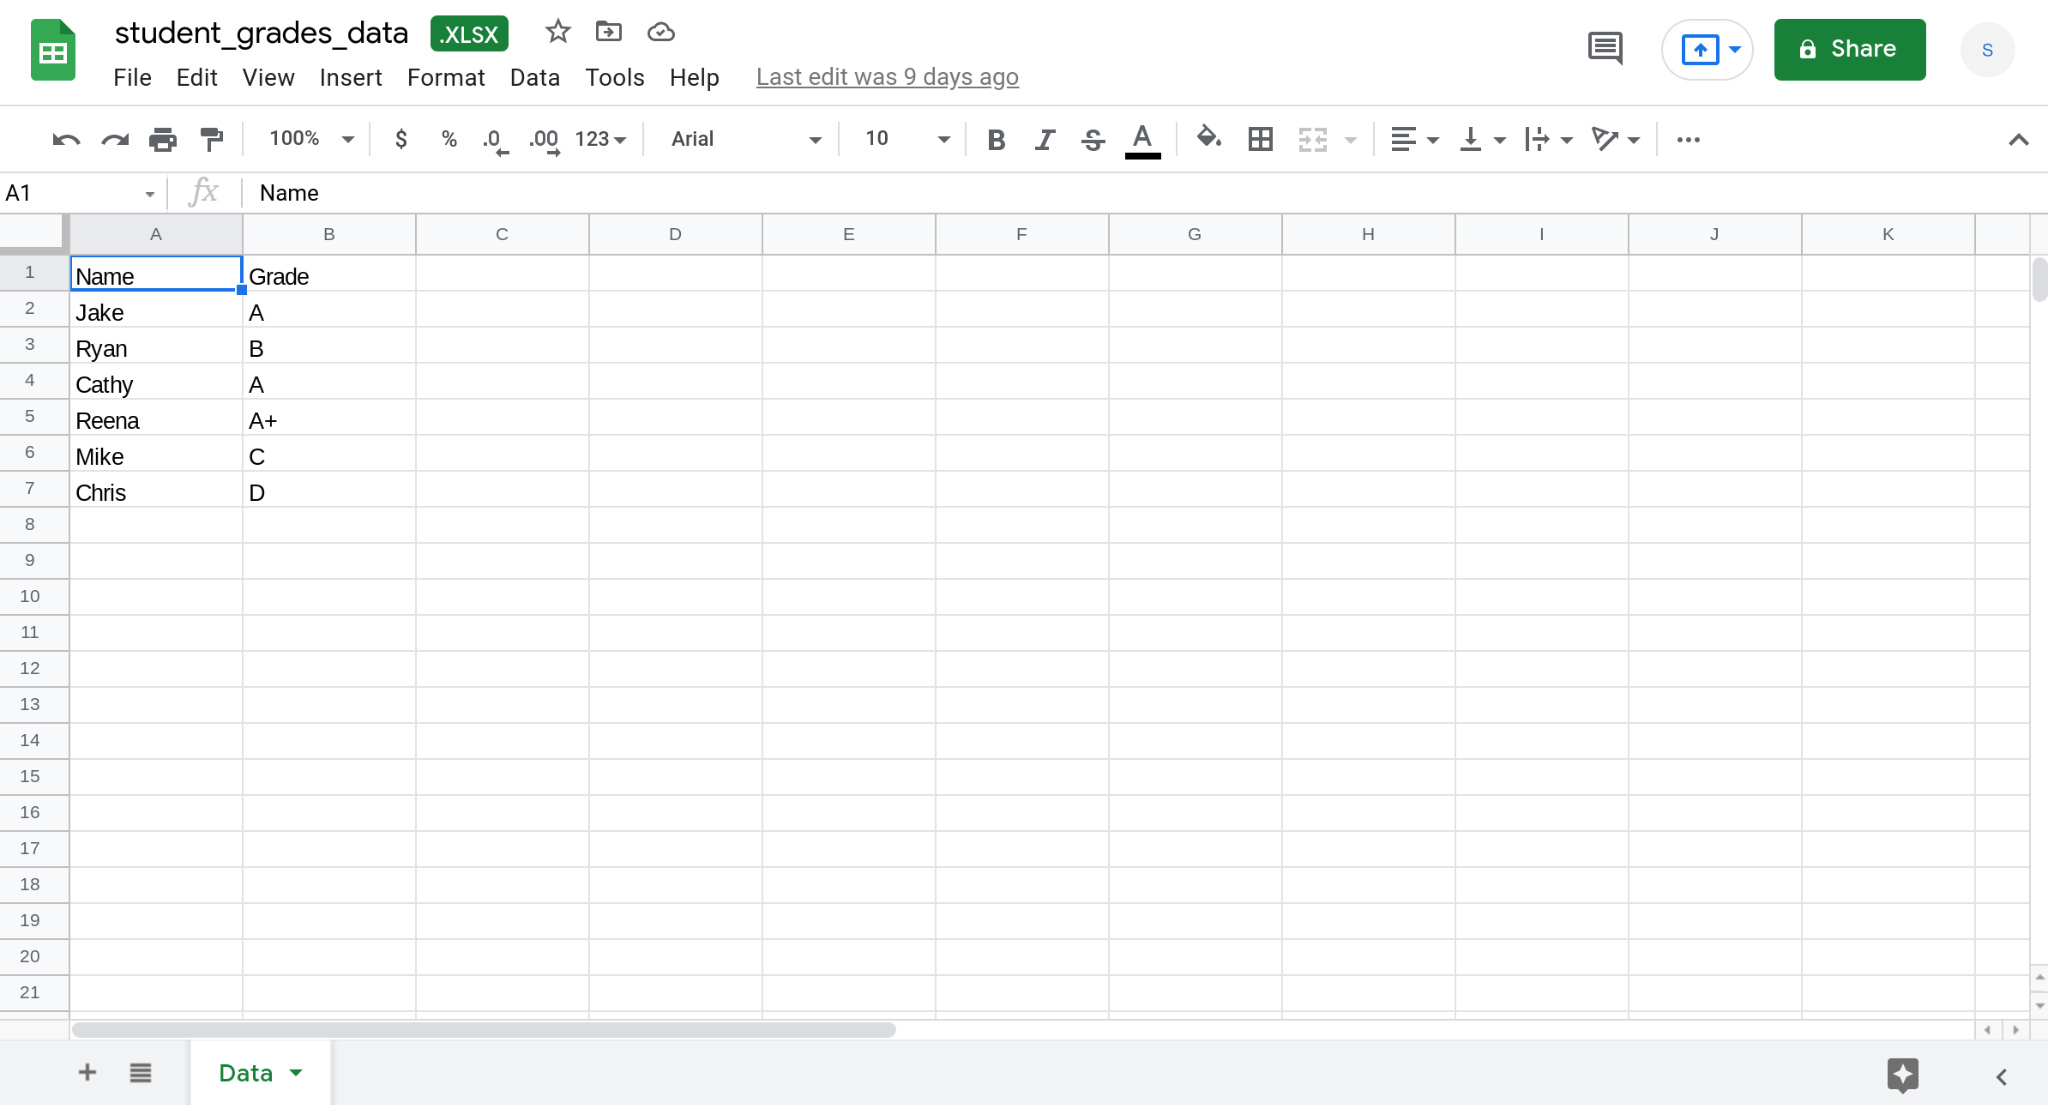 Screenshot of a sheet called Data in an Excel file. The sheet contains information about the grades of six students.